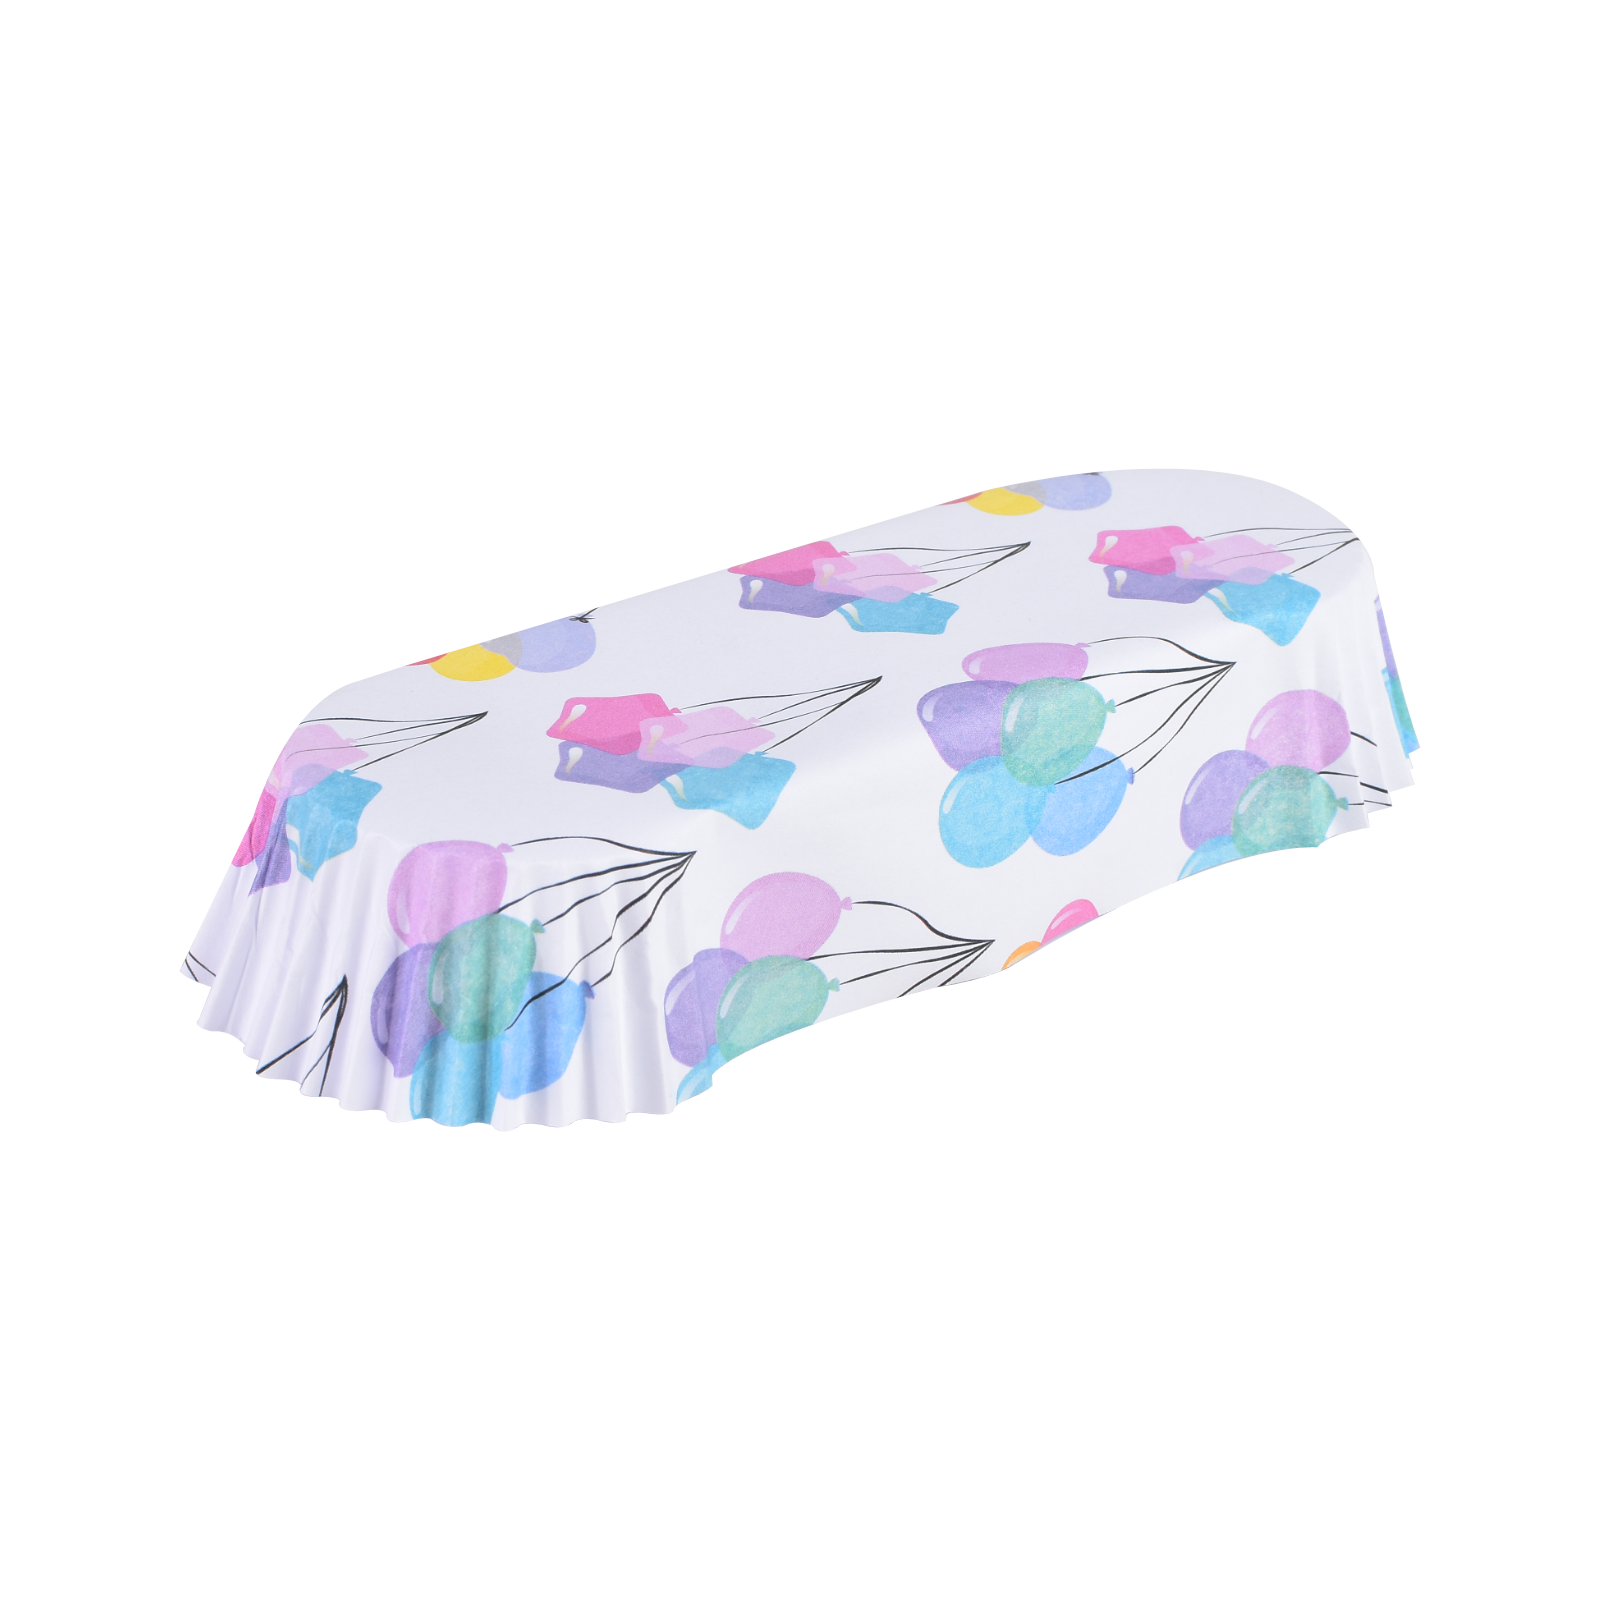 bread oval cup 3.png